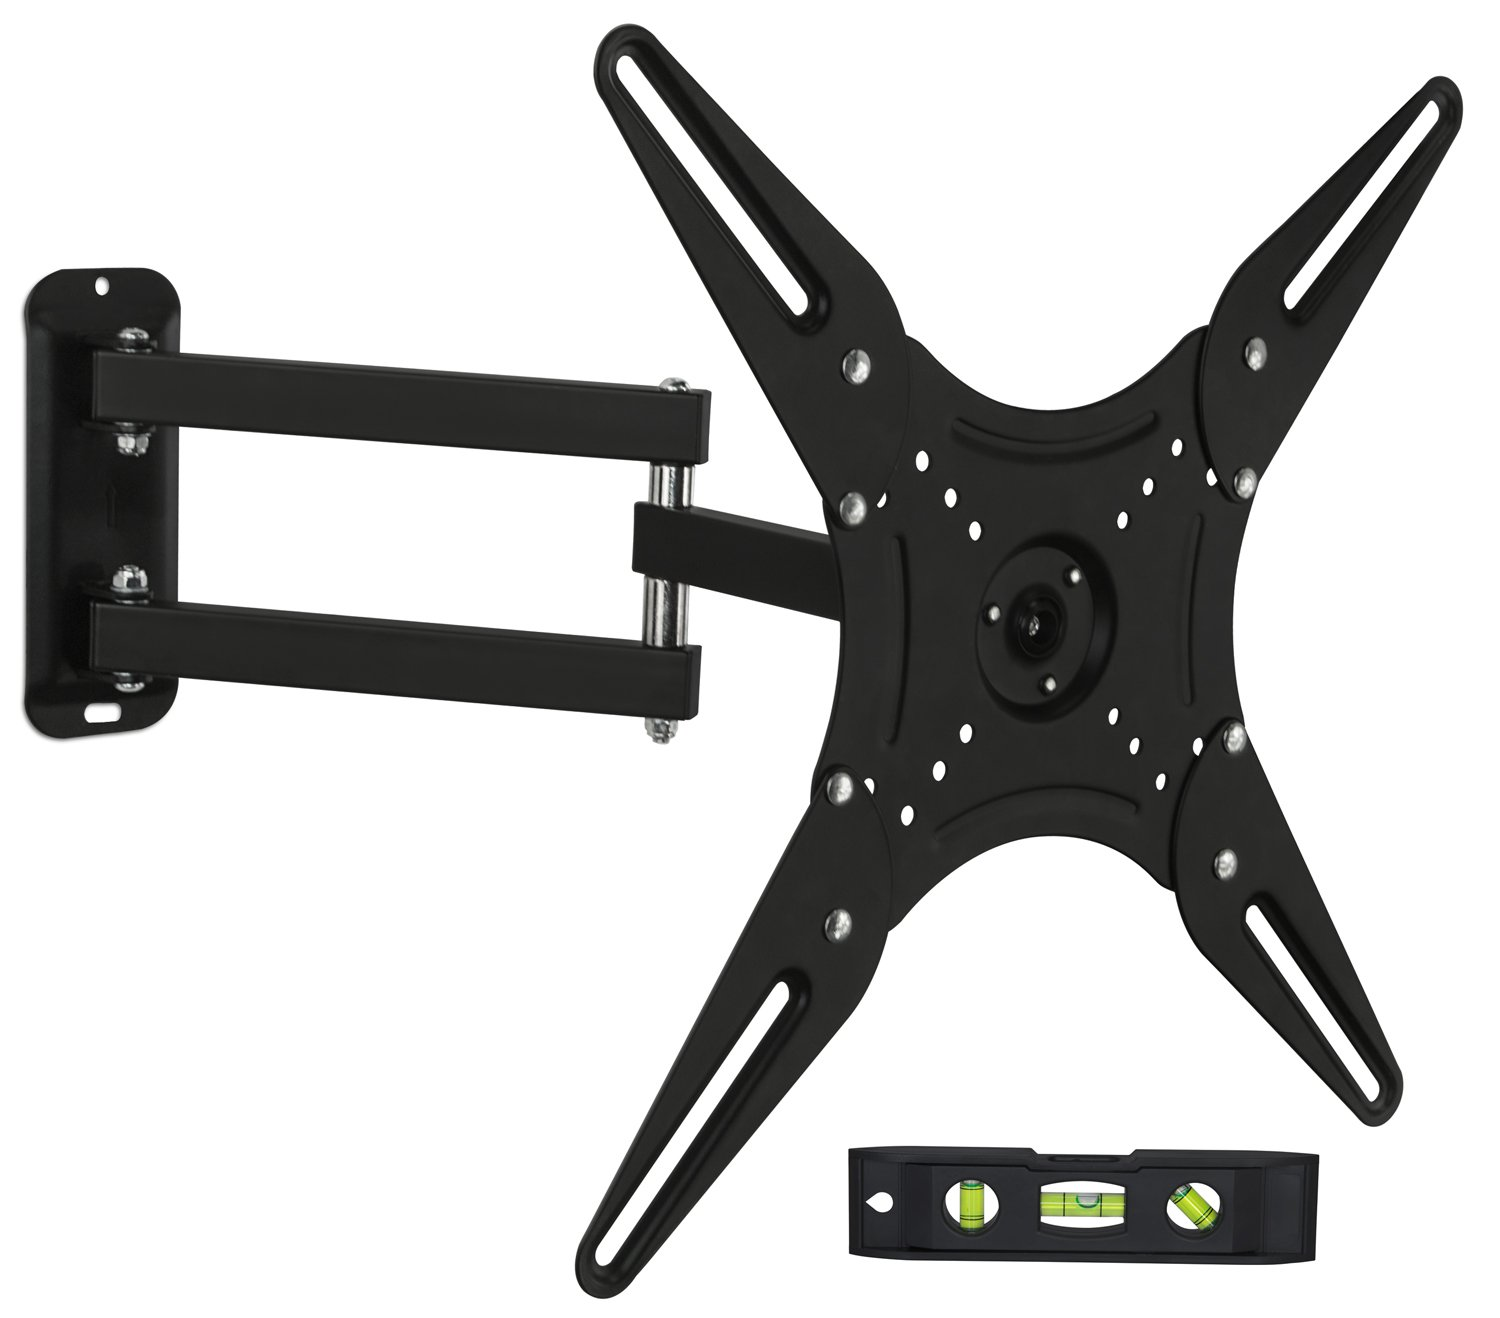 Mount-It TV Wall Mount Full Motion LCD, LED 4K TV Swivel Bracket for 23-55 inch Screen Size, Compatible with VESA 400x400, 66 lbs Capacity (MI-2065L), Black